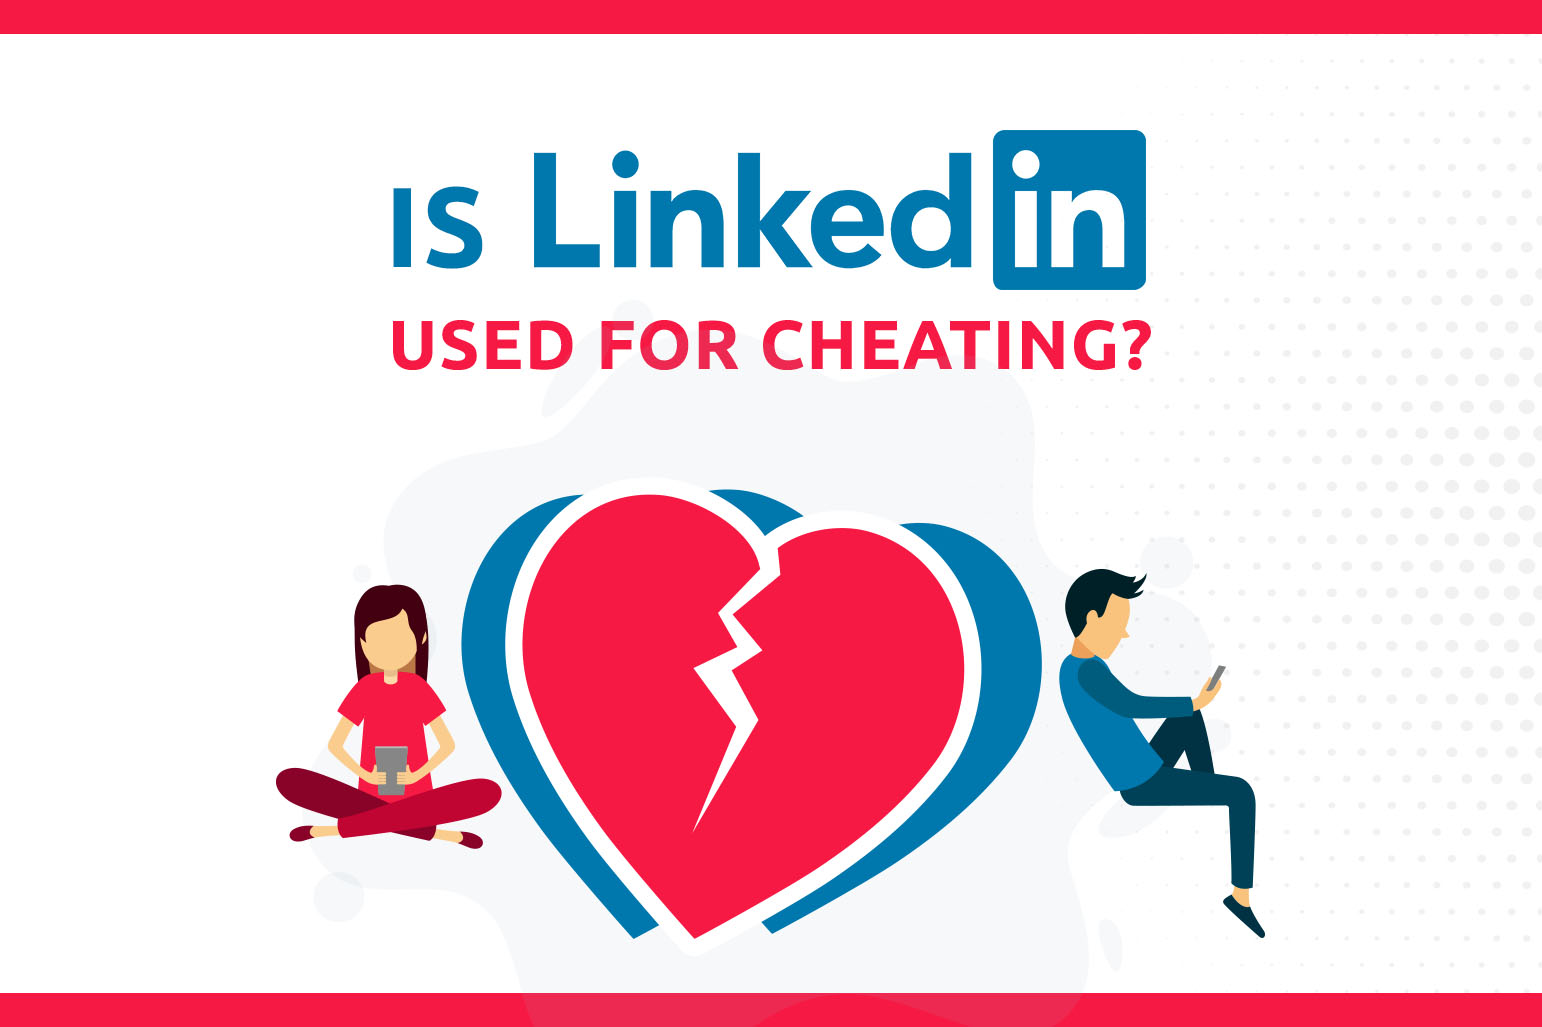 Is LinkedIn Used For Cheating?